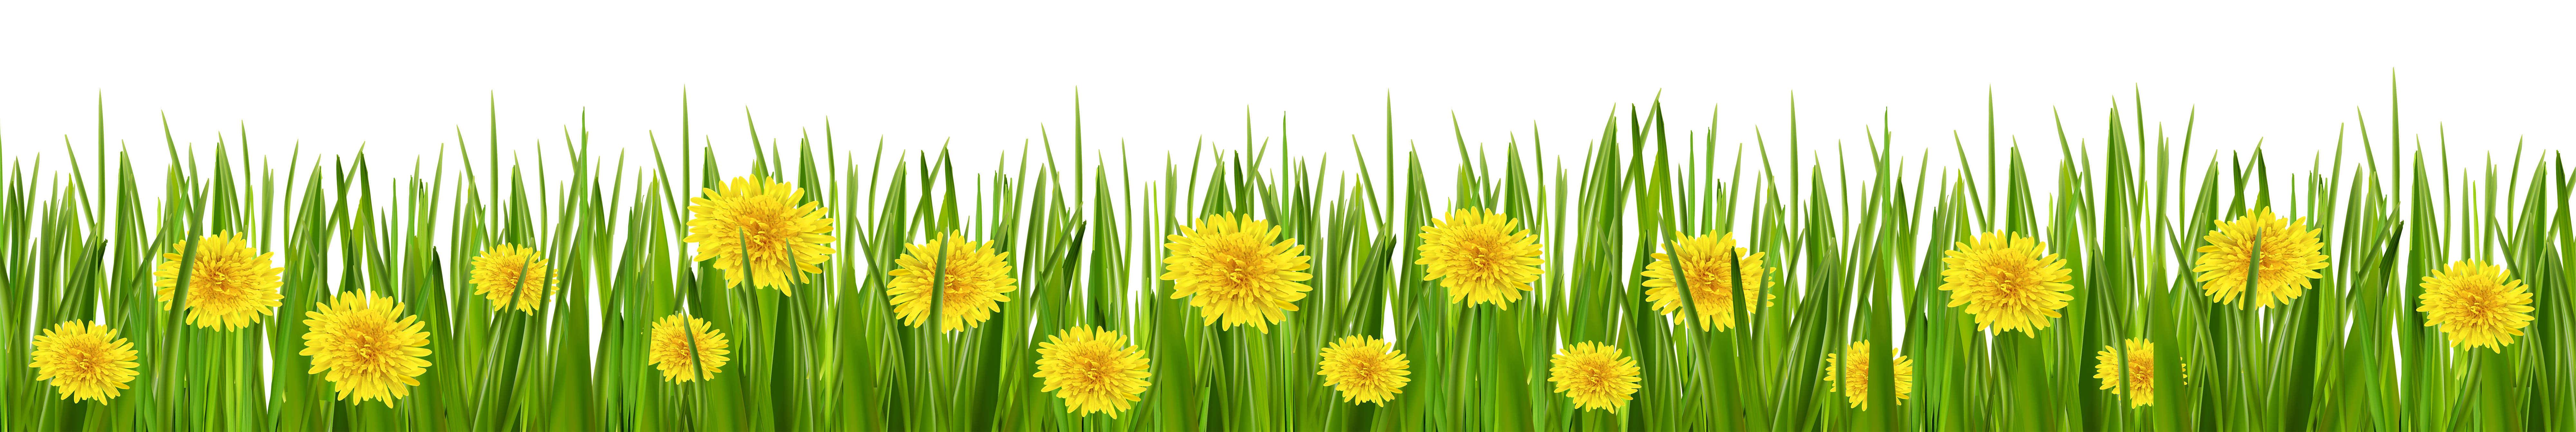 Grass sun clipart vector black and white Grass and Dandelions PNG Clip Art - Best WEB Clipart vector black and white